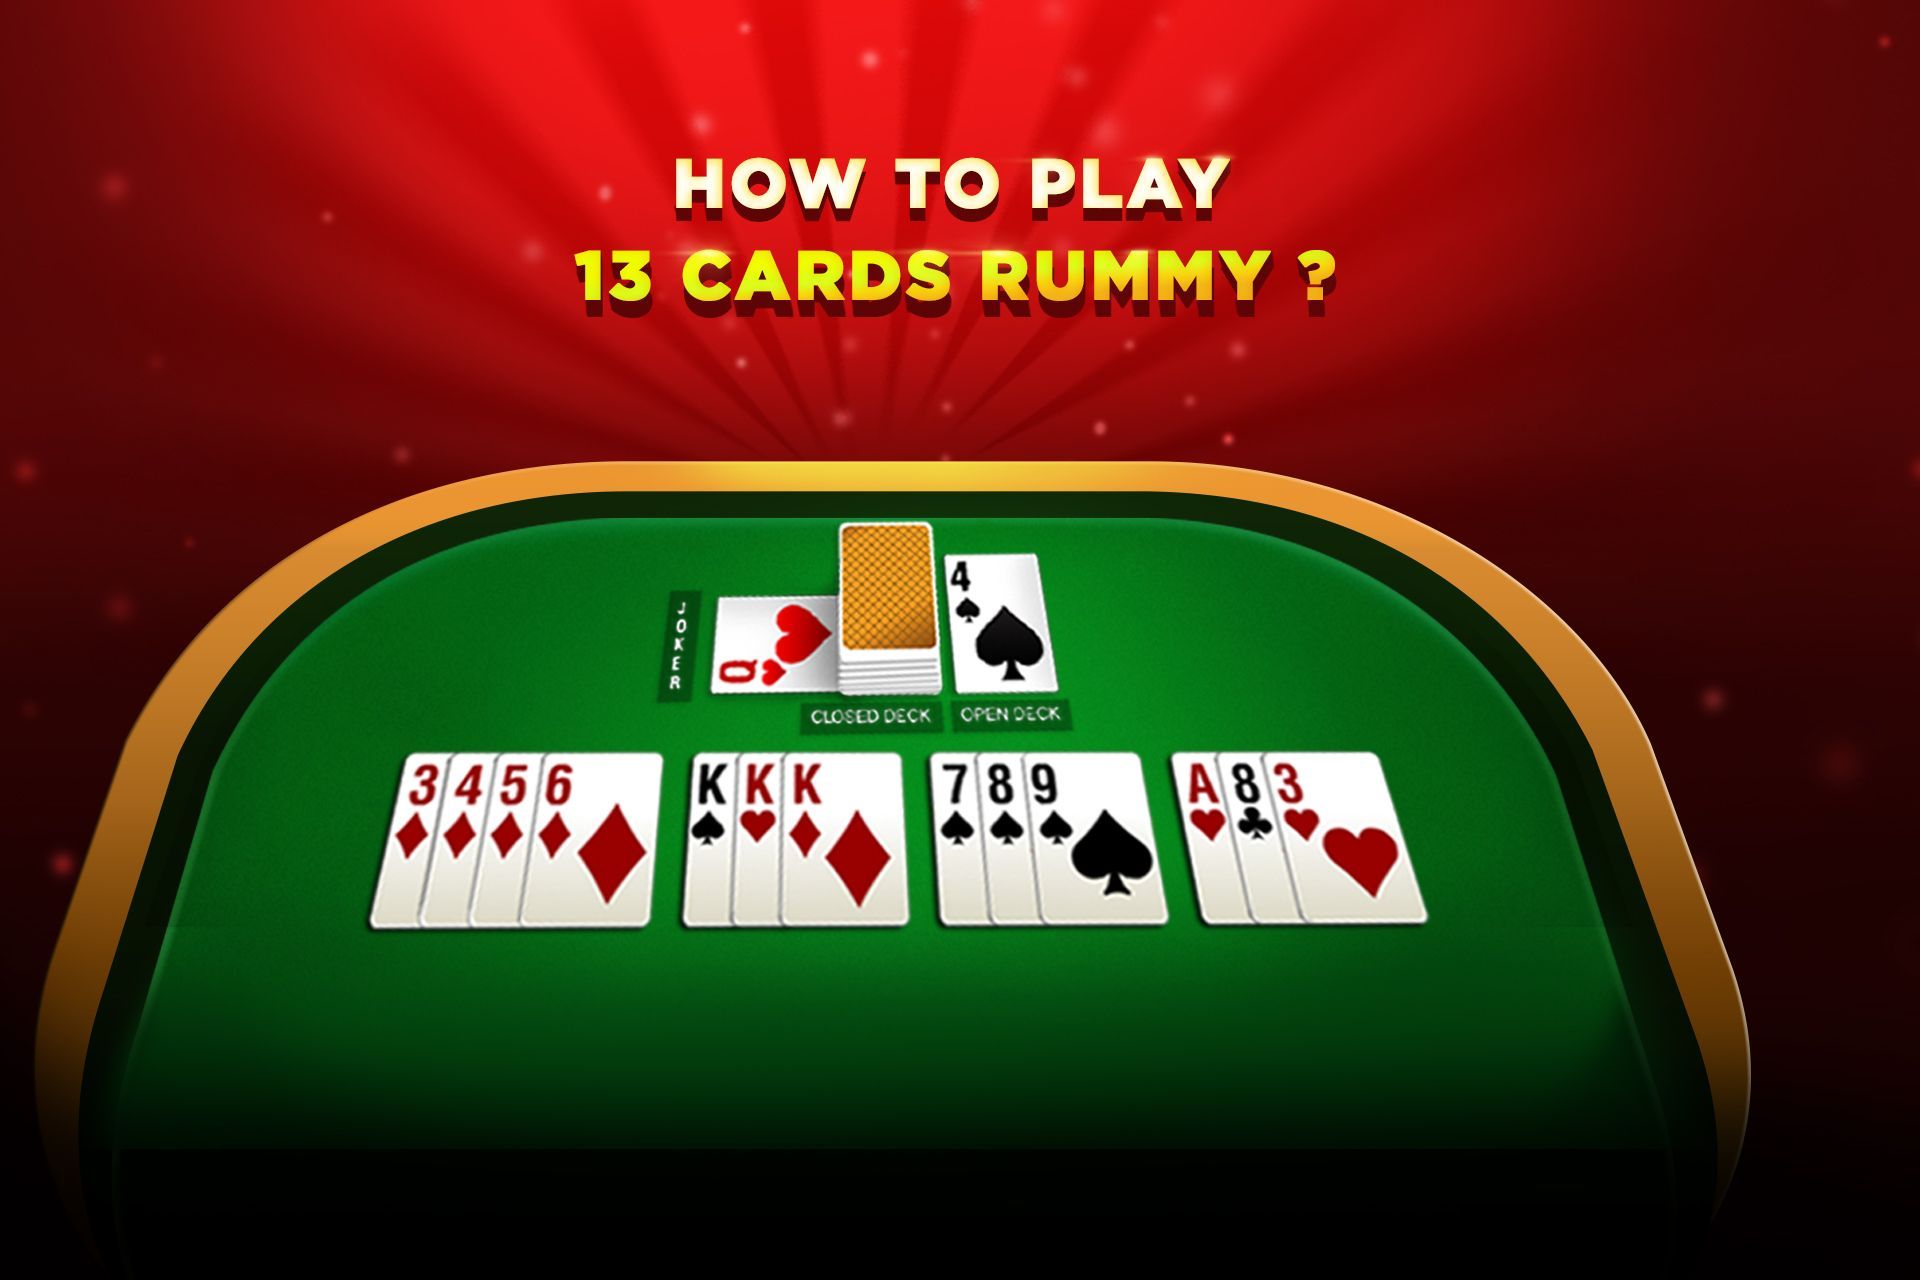 Pin by RummyToday on Poker in 2021 | Rummy, Classic games